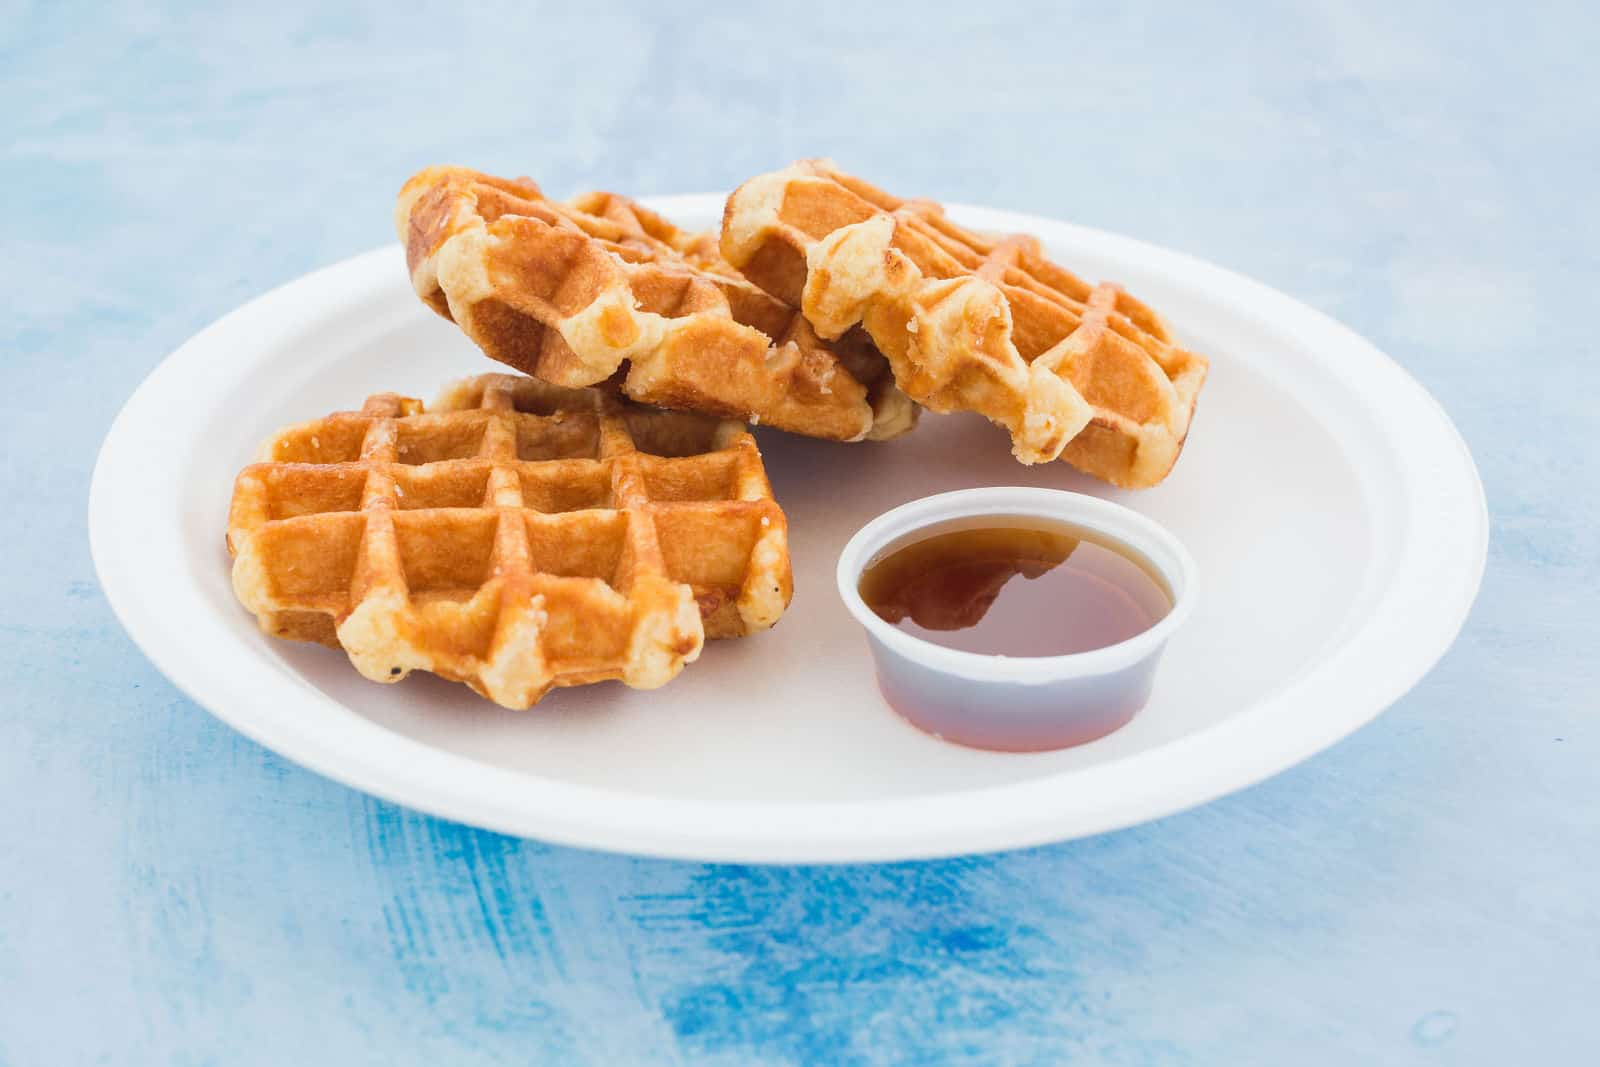 A trio of waffles tantalize on a plate.